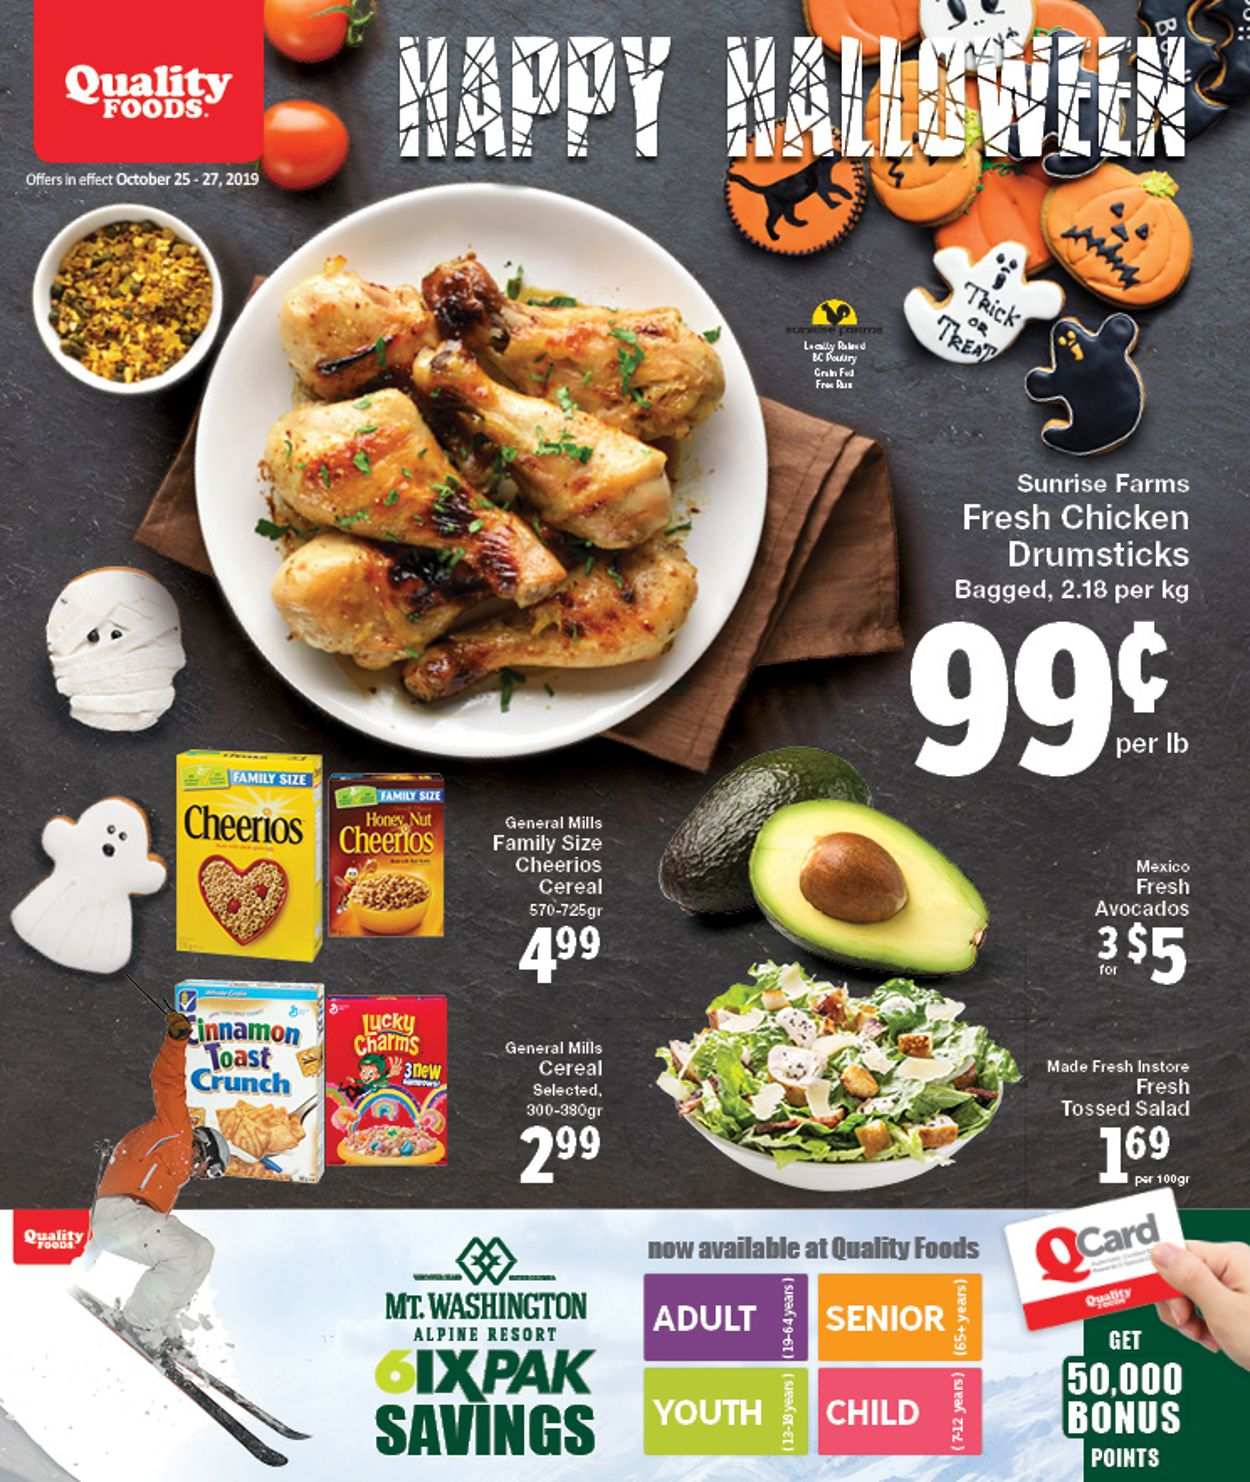 Quality Foods Flyer - 10/25-10/27/2019